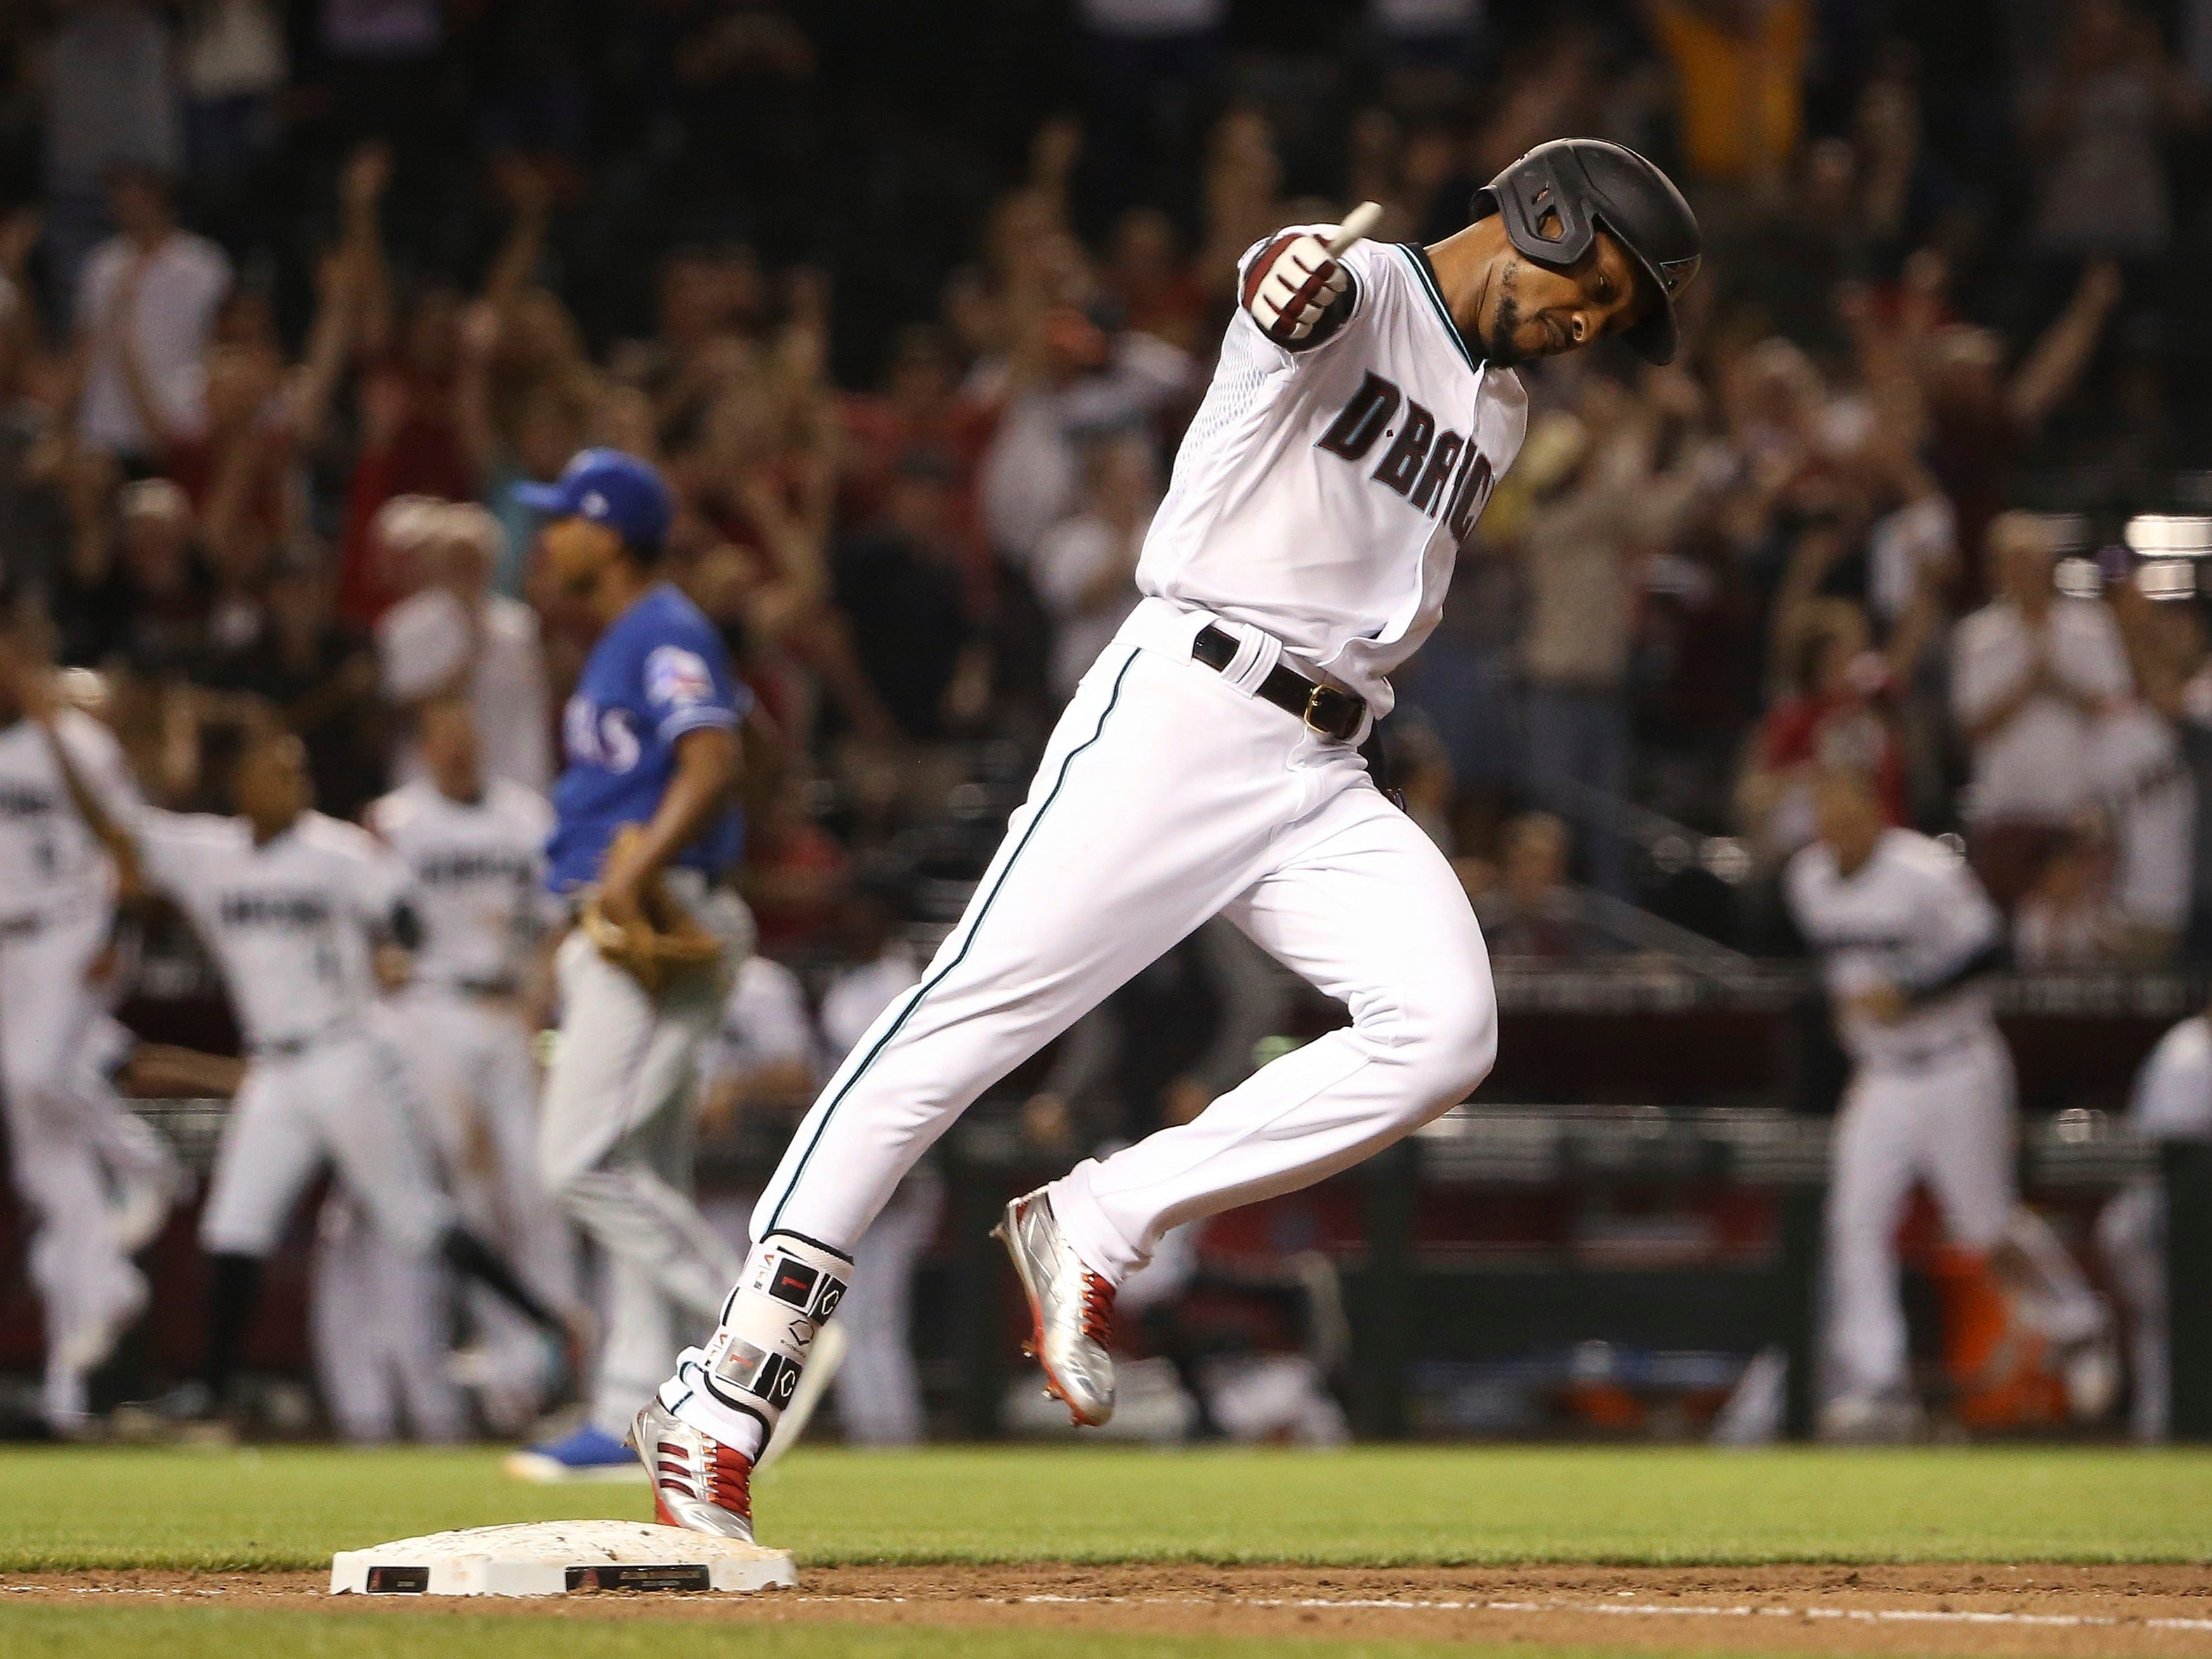 Arizona Diamondbacks' Jarrod Dyson celebrates his two-run walk-off home run against the Texas Rangers in a baseball game Tuesday, April 9, 2019, in Phoenix. The Diamondbacks defeated the Rangers 5-4. (AP Photo/Ross D. Franklin)